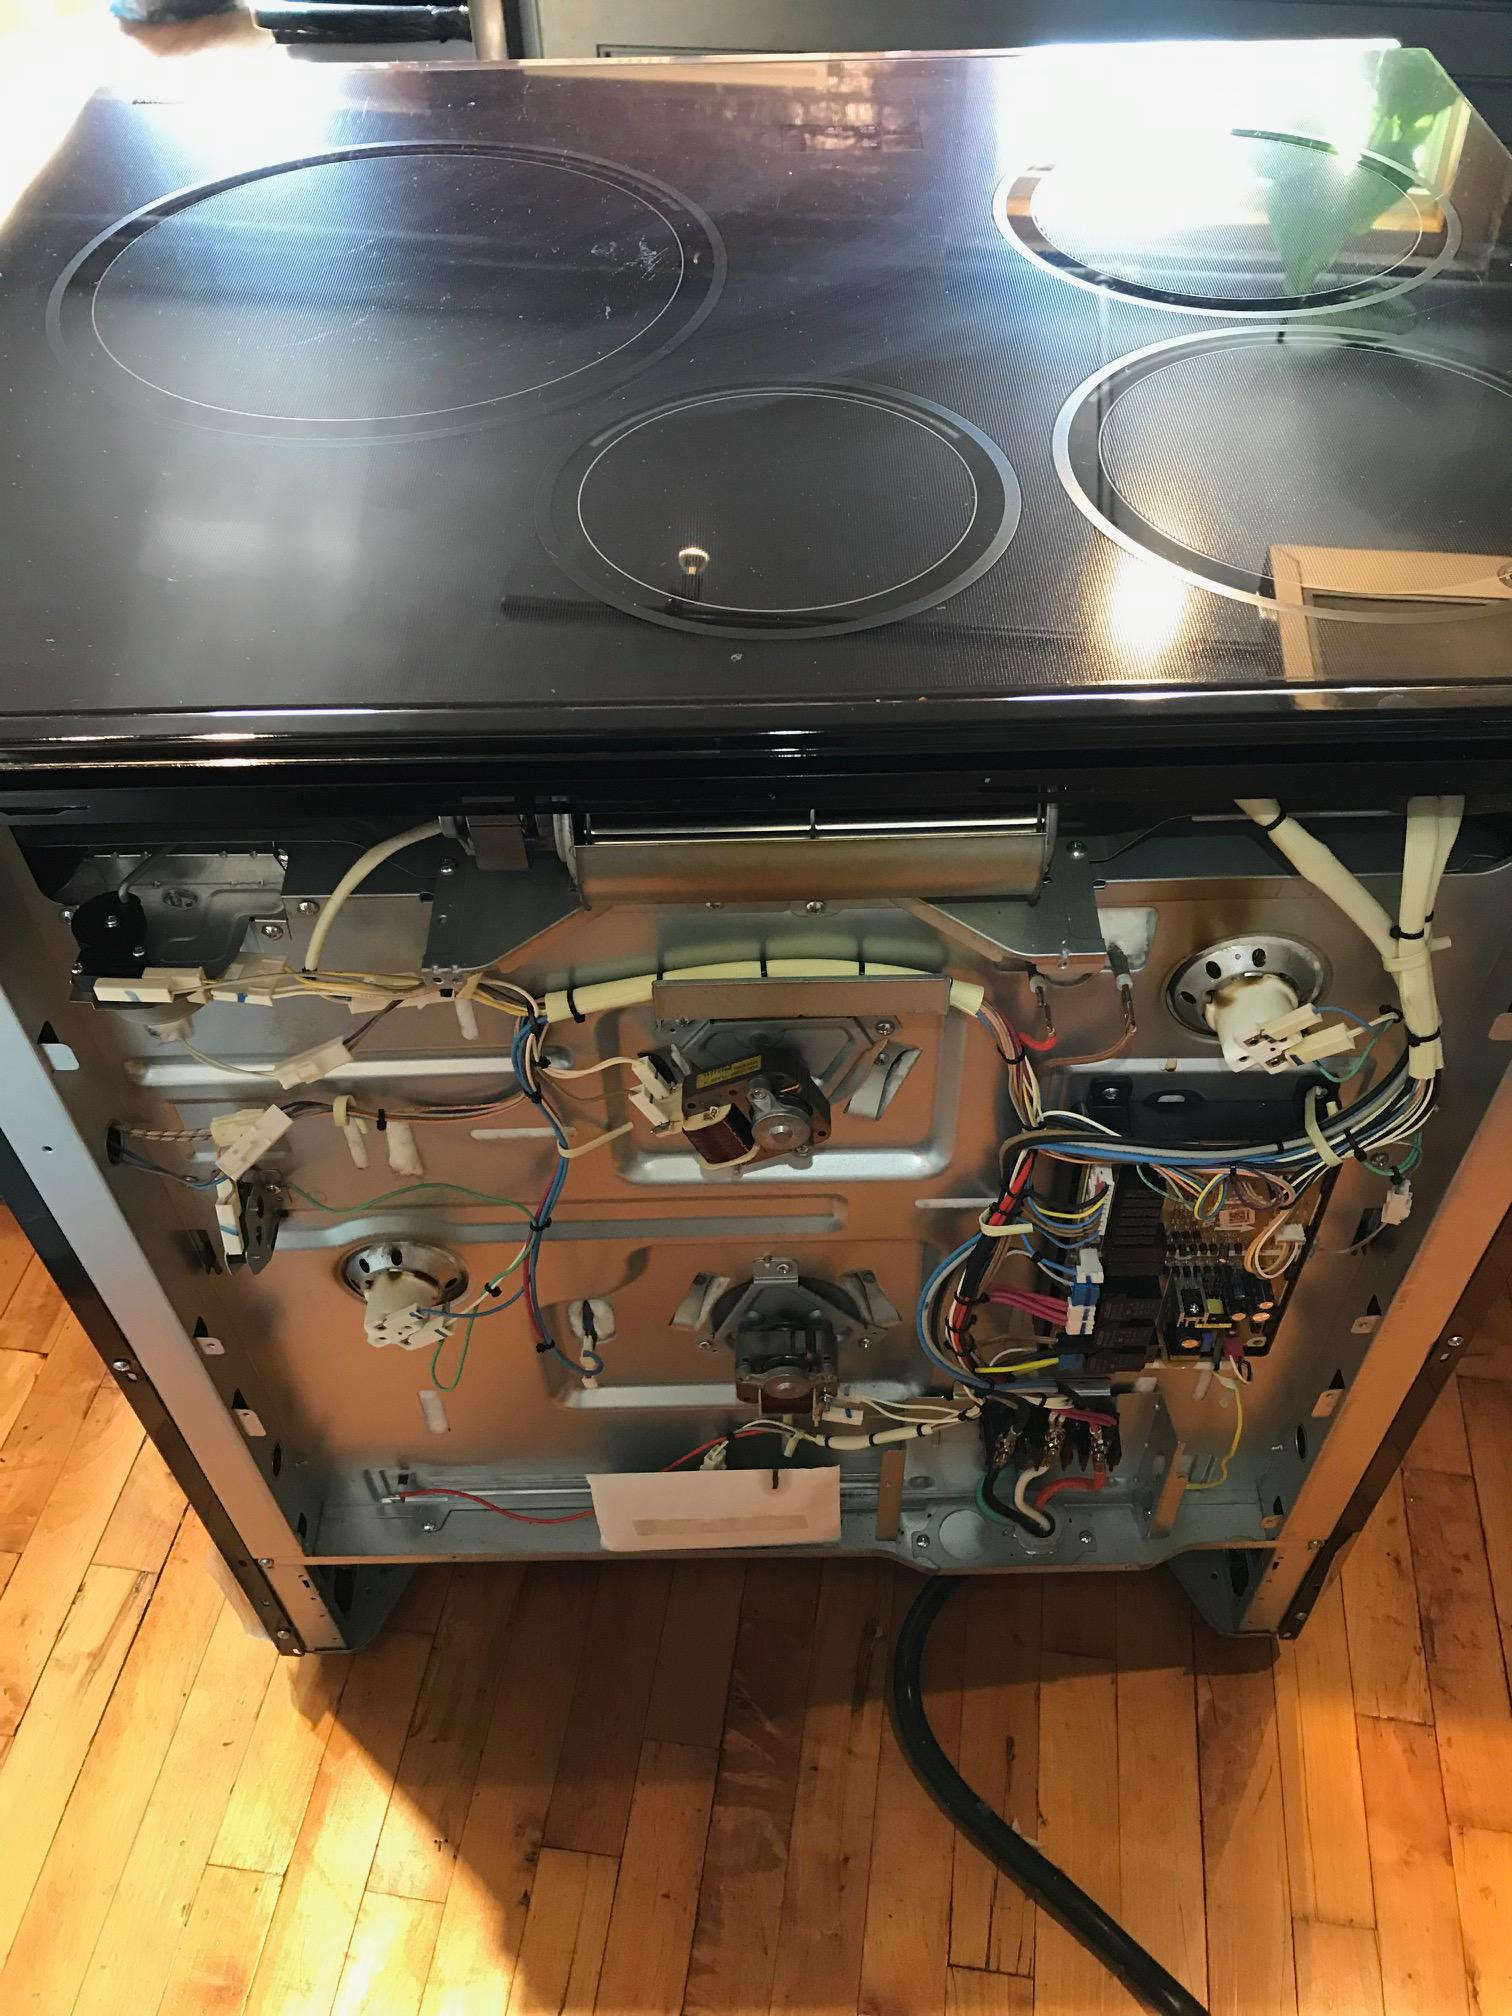 Global Solutions Appliance Repair image 86